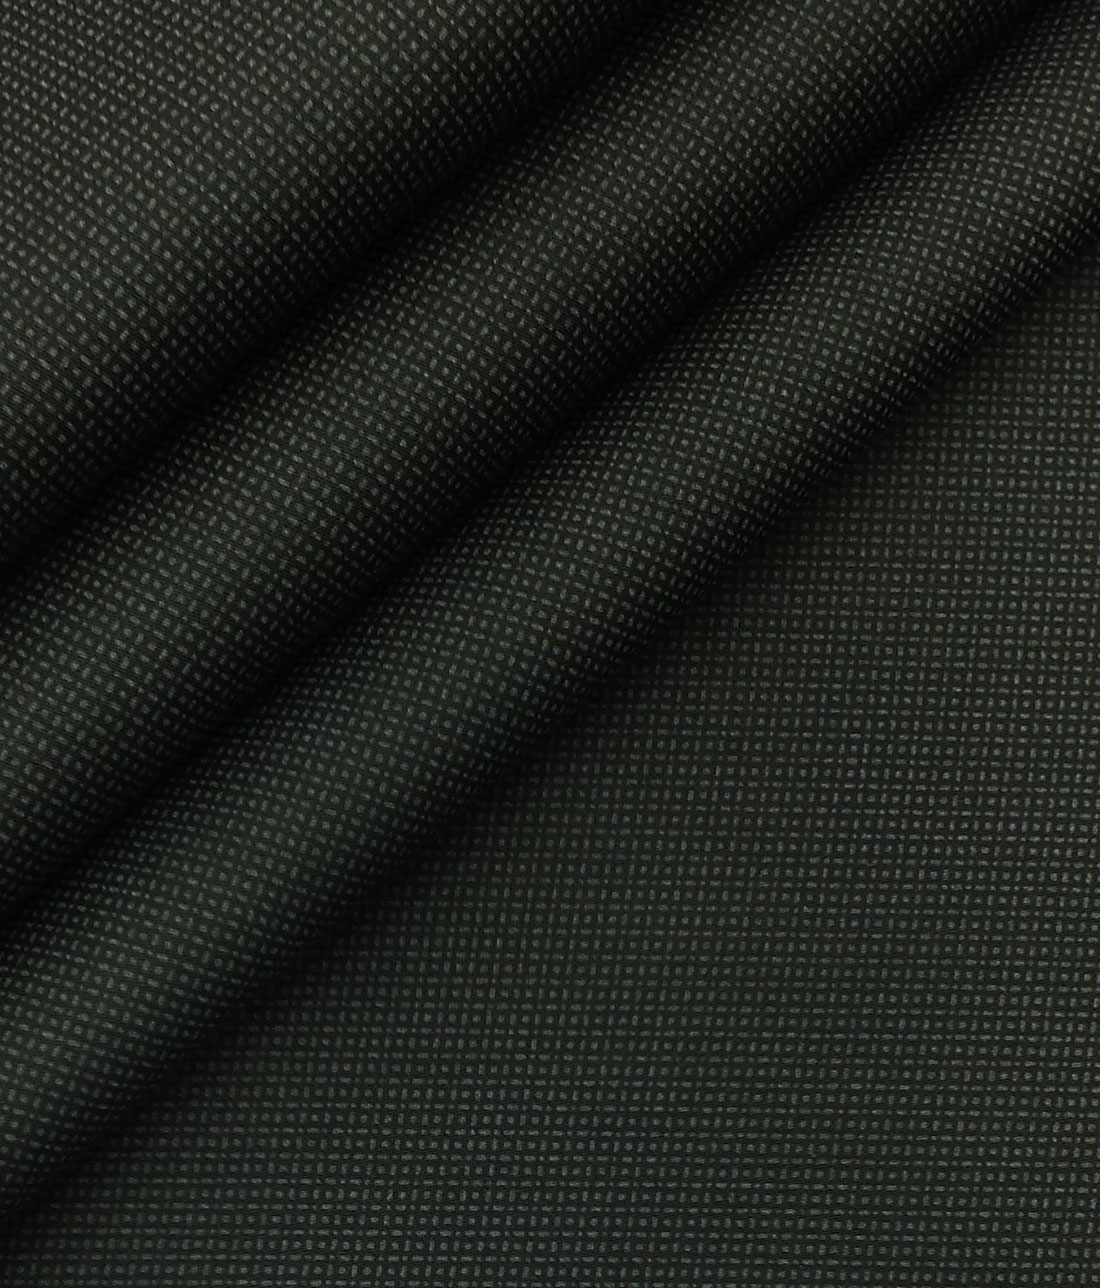 Saville & Young (S&Y) Greyish Black 100% Giza Cotton Dots Printed Trouser Fabric (Unstitched - 1.30 Mtr)